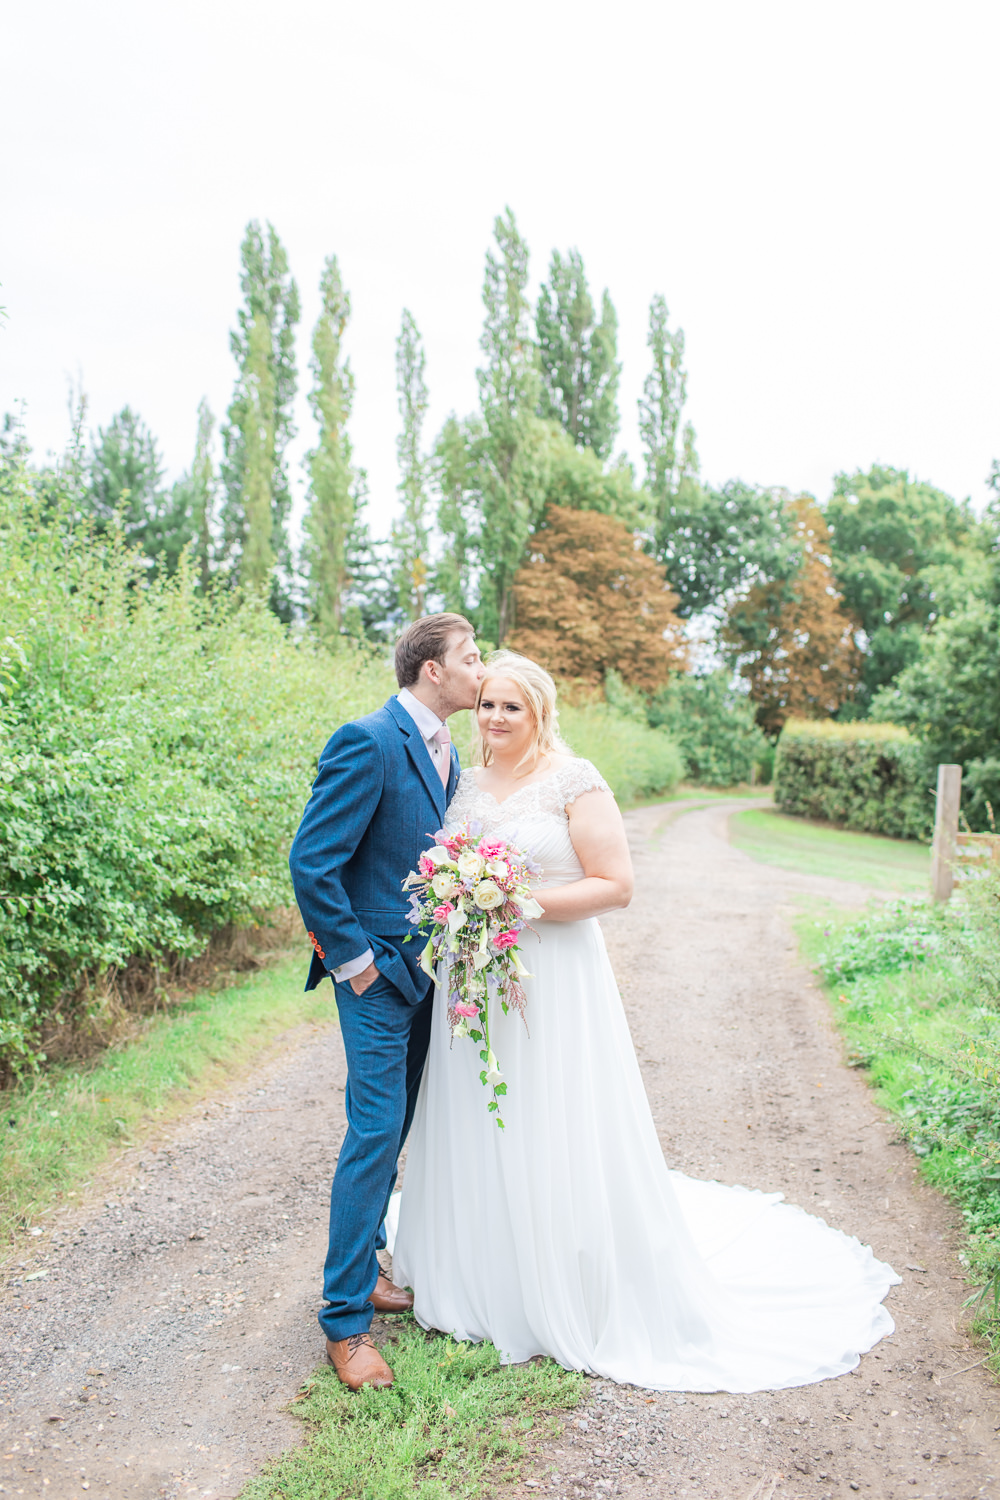 Bride Bridal Short Sleeve Lace V Neck Dress Gown Navy Wool Tweed Suit Groom Waterfall Bouquet Bedfordshire Tipi Wedding Natalie Stevenson Photography